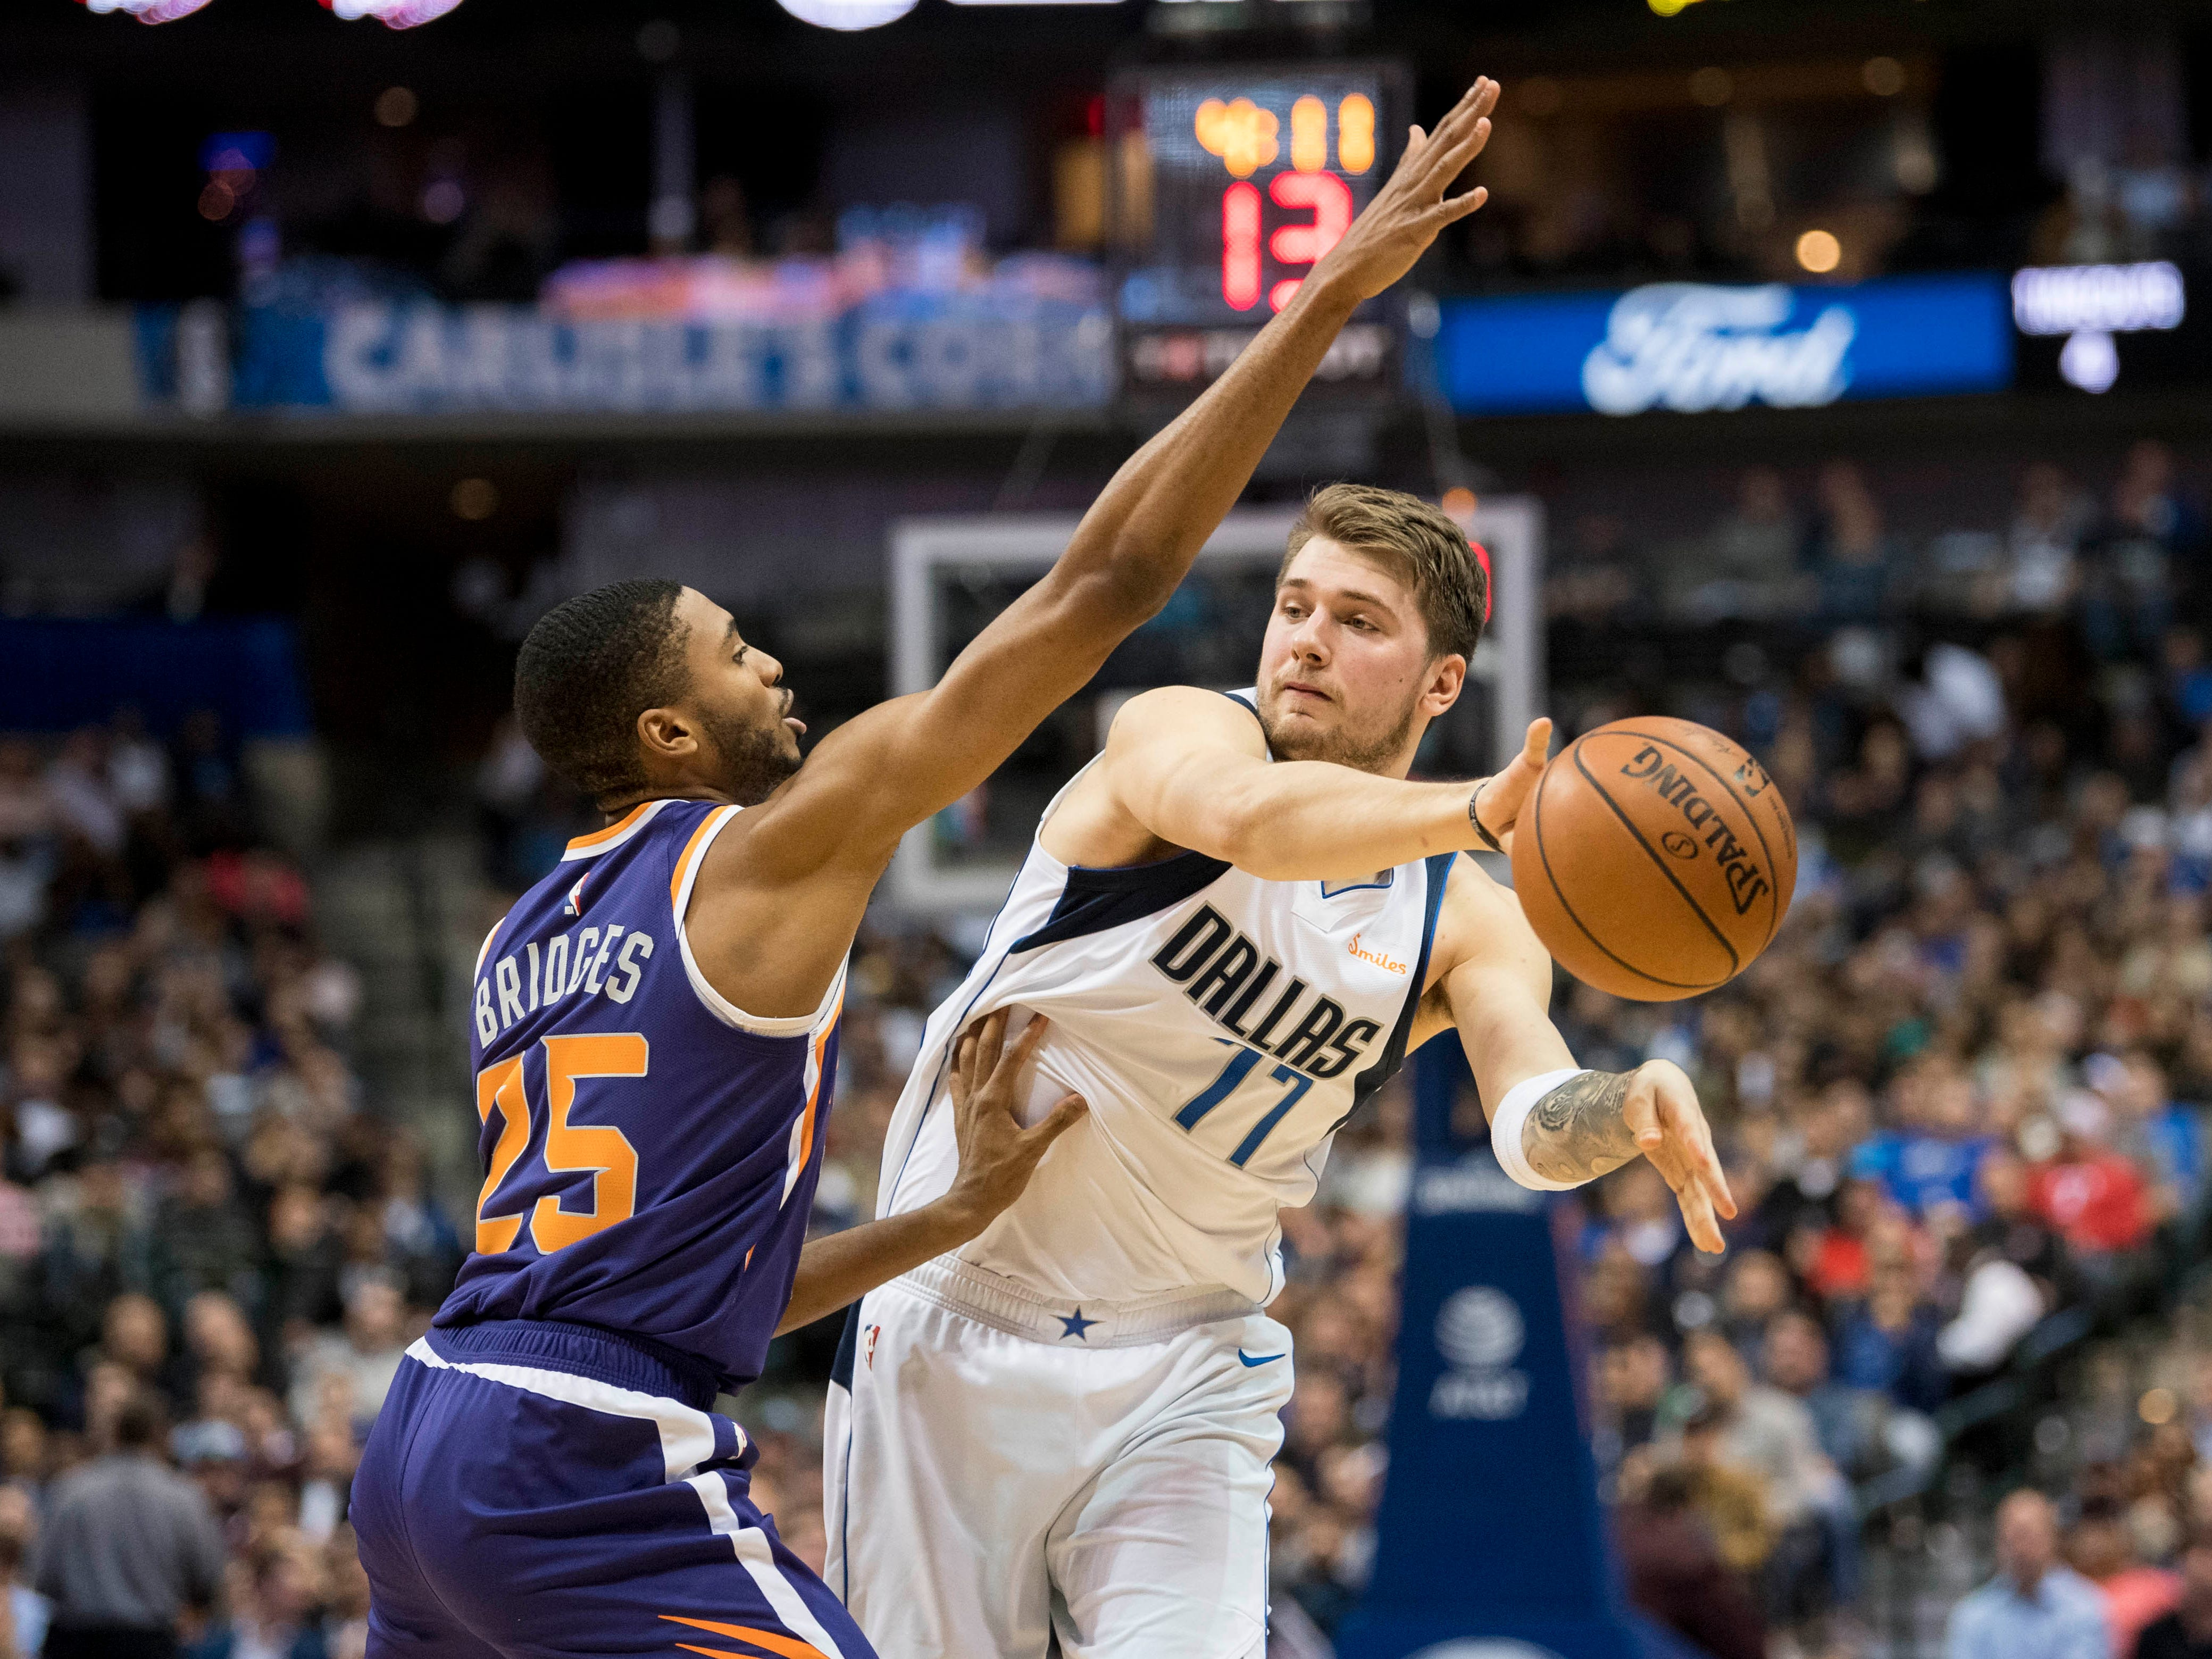 Jan 9, 2019; Dallas, TX, USA; Dallas Mavericks forward Luka Doncic (77) passes the ball around Phoenix Suns forward Mikal Bridges (25) during the second quarter at the American Airlines Center. Mandatory Credit: Jerome Miron-USA TODAY Sports